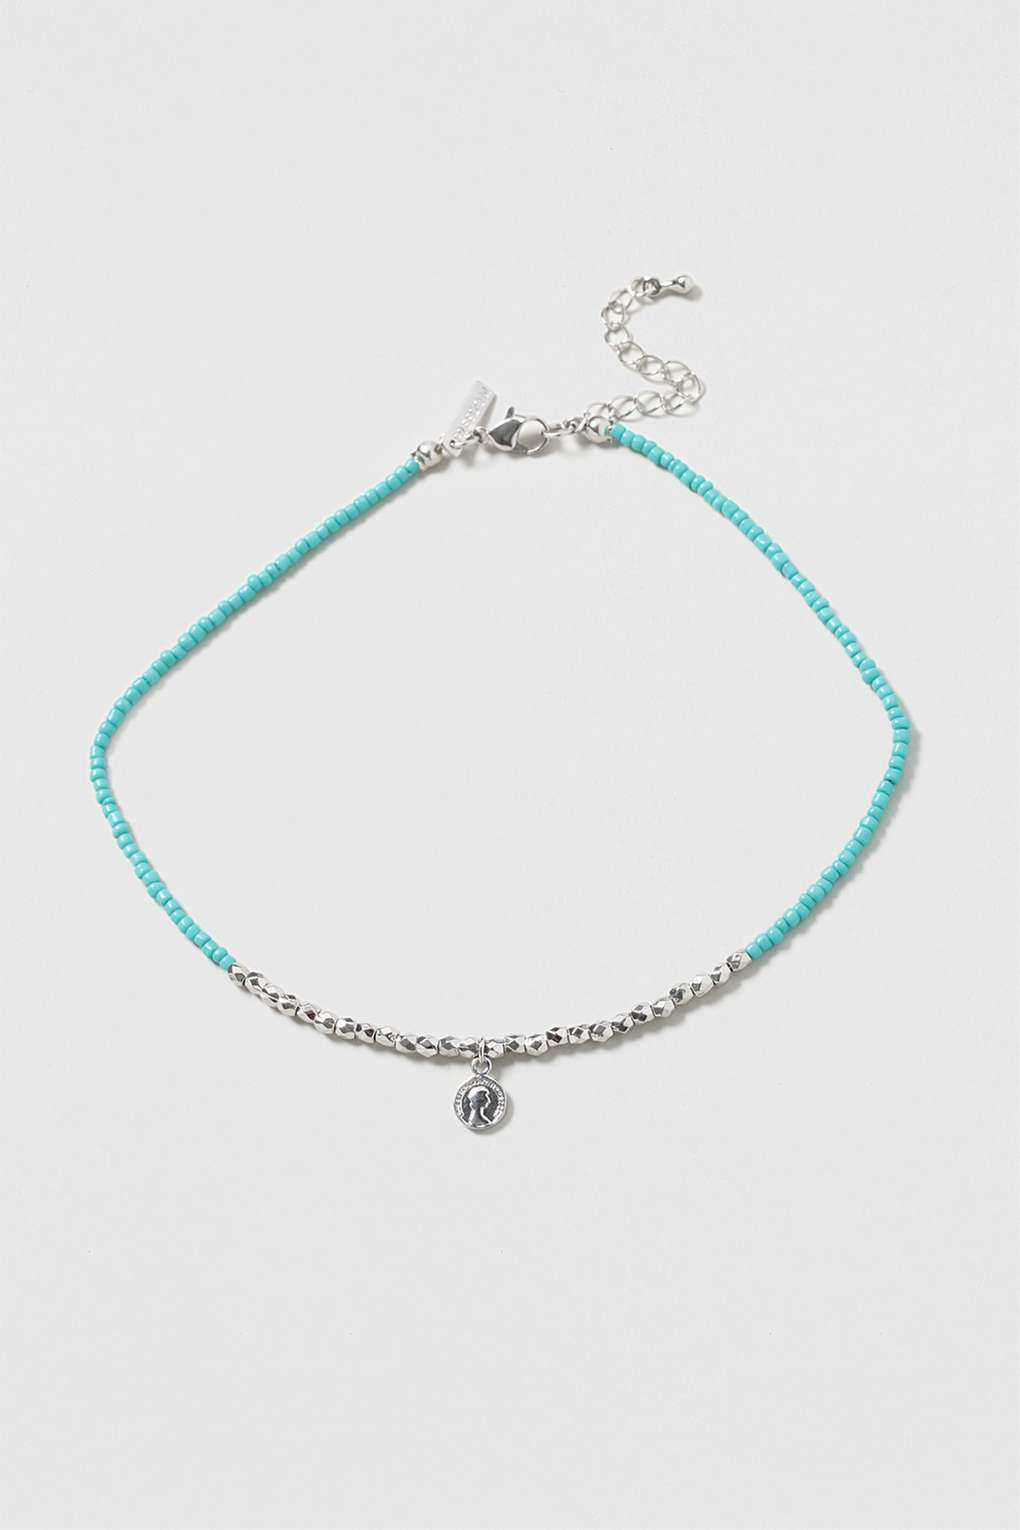 TOPSHOP Beaded Coin Choker in Turquoise (Metallic)